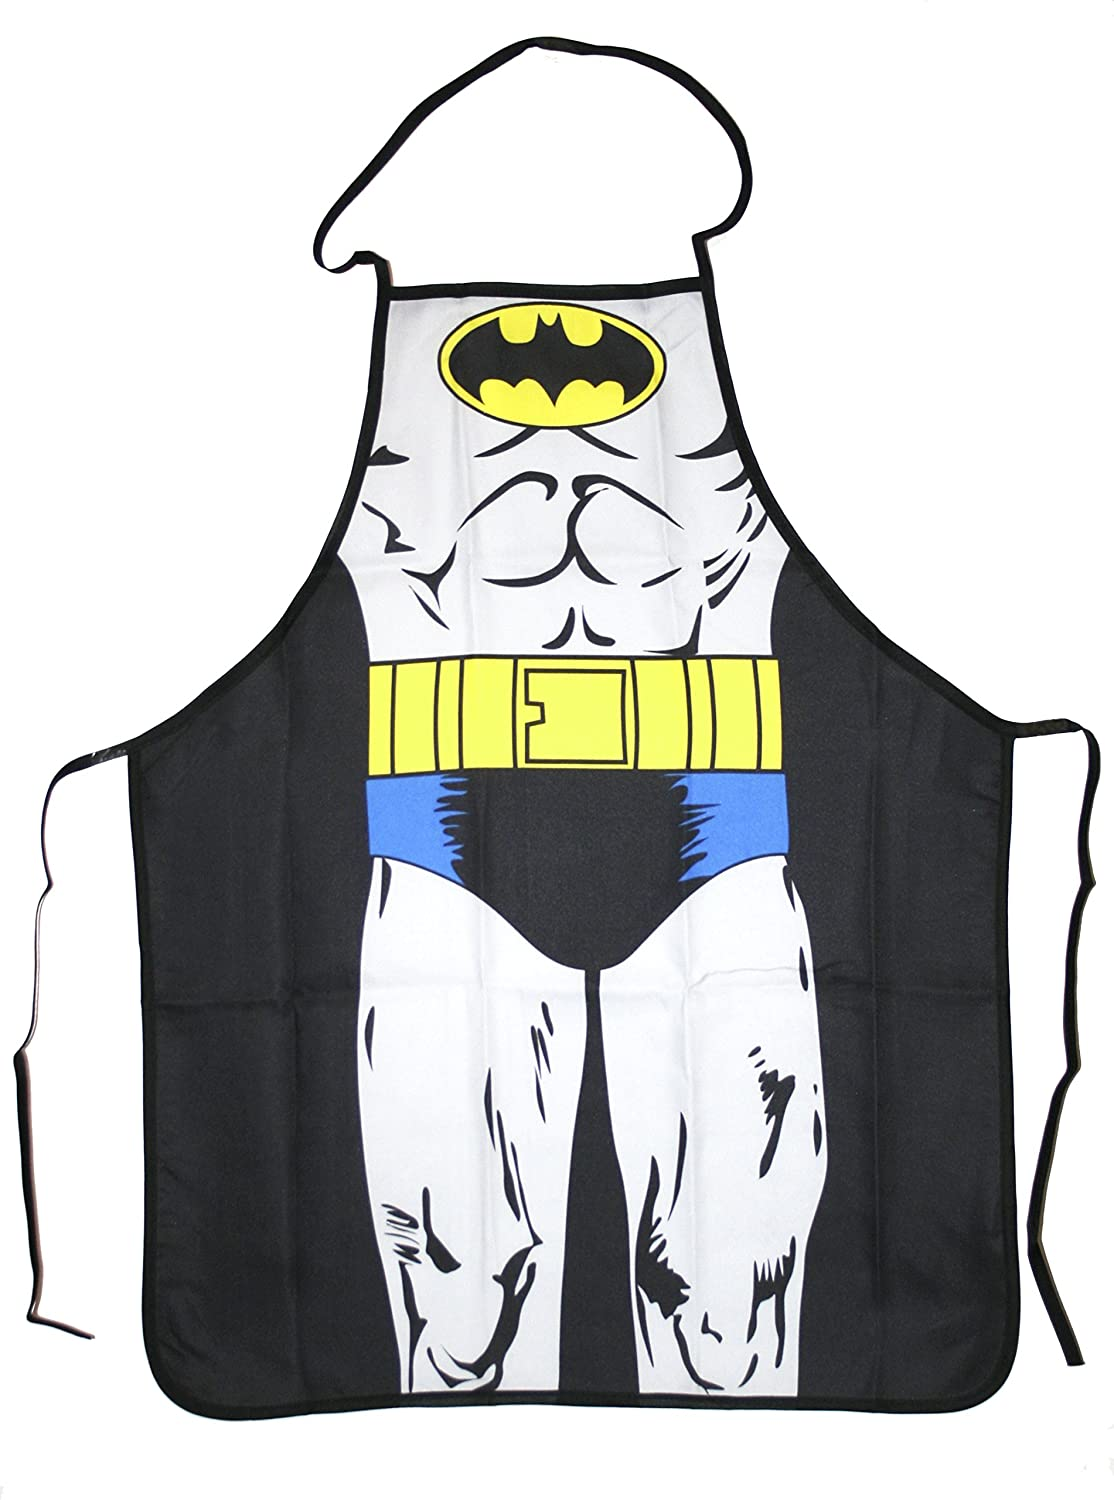 Comic Character Adult Multipurpose Apron. Ideal for a Cook, Chef, Housewife, Artist, or a Griller - 100% Polyester and Quality Print - Very Colorful, Fun and Creative - Costume Alternative! Be a Hero / Heroine on the Grill, Kitchen or At Work! how to cook with chef louie kids cookbooks box set with apron badges